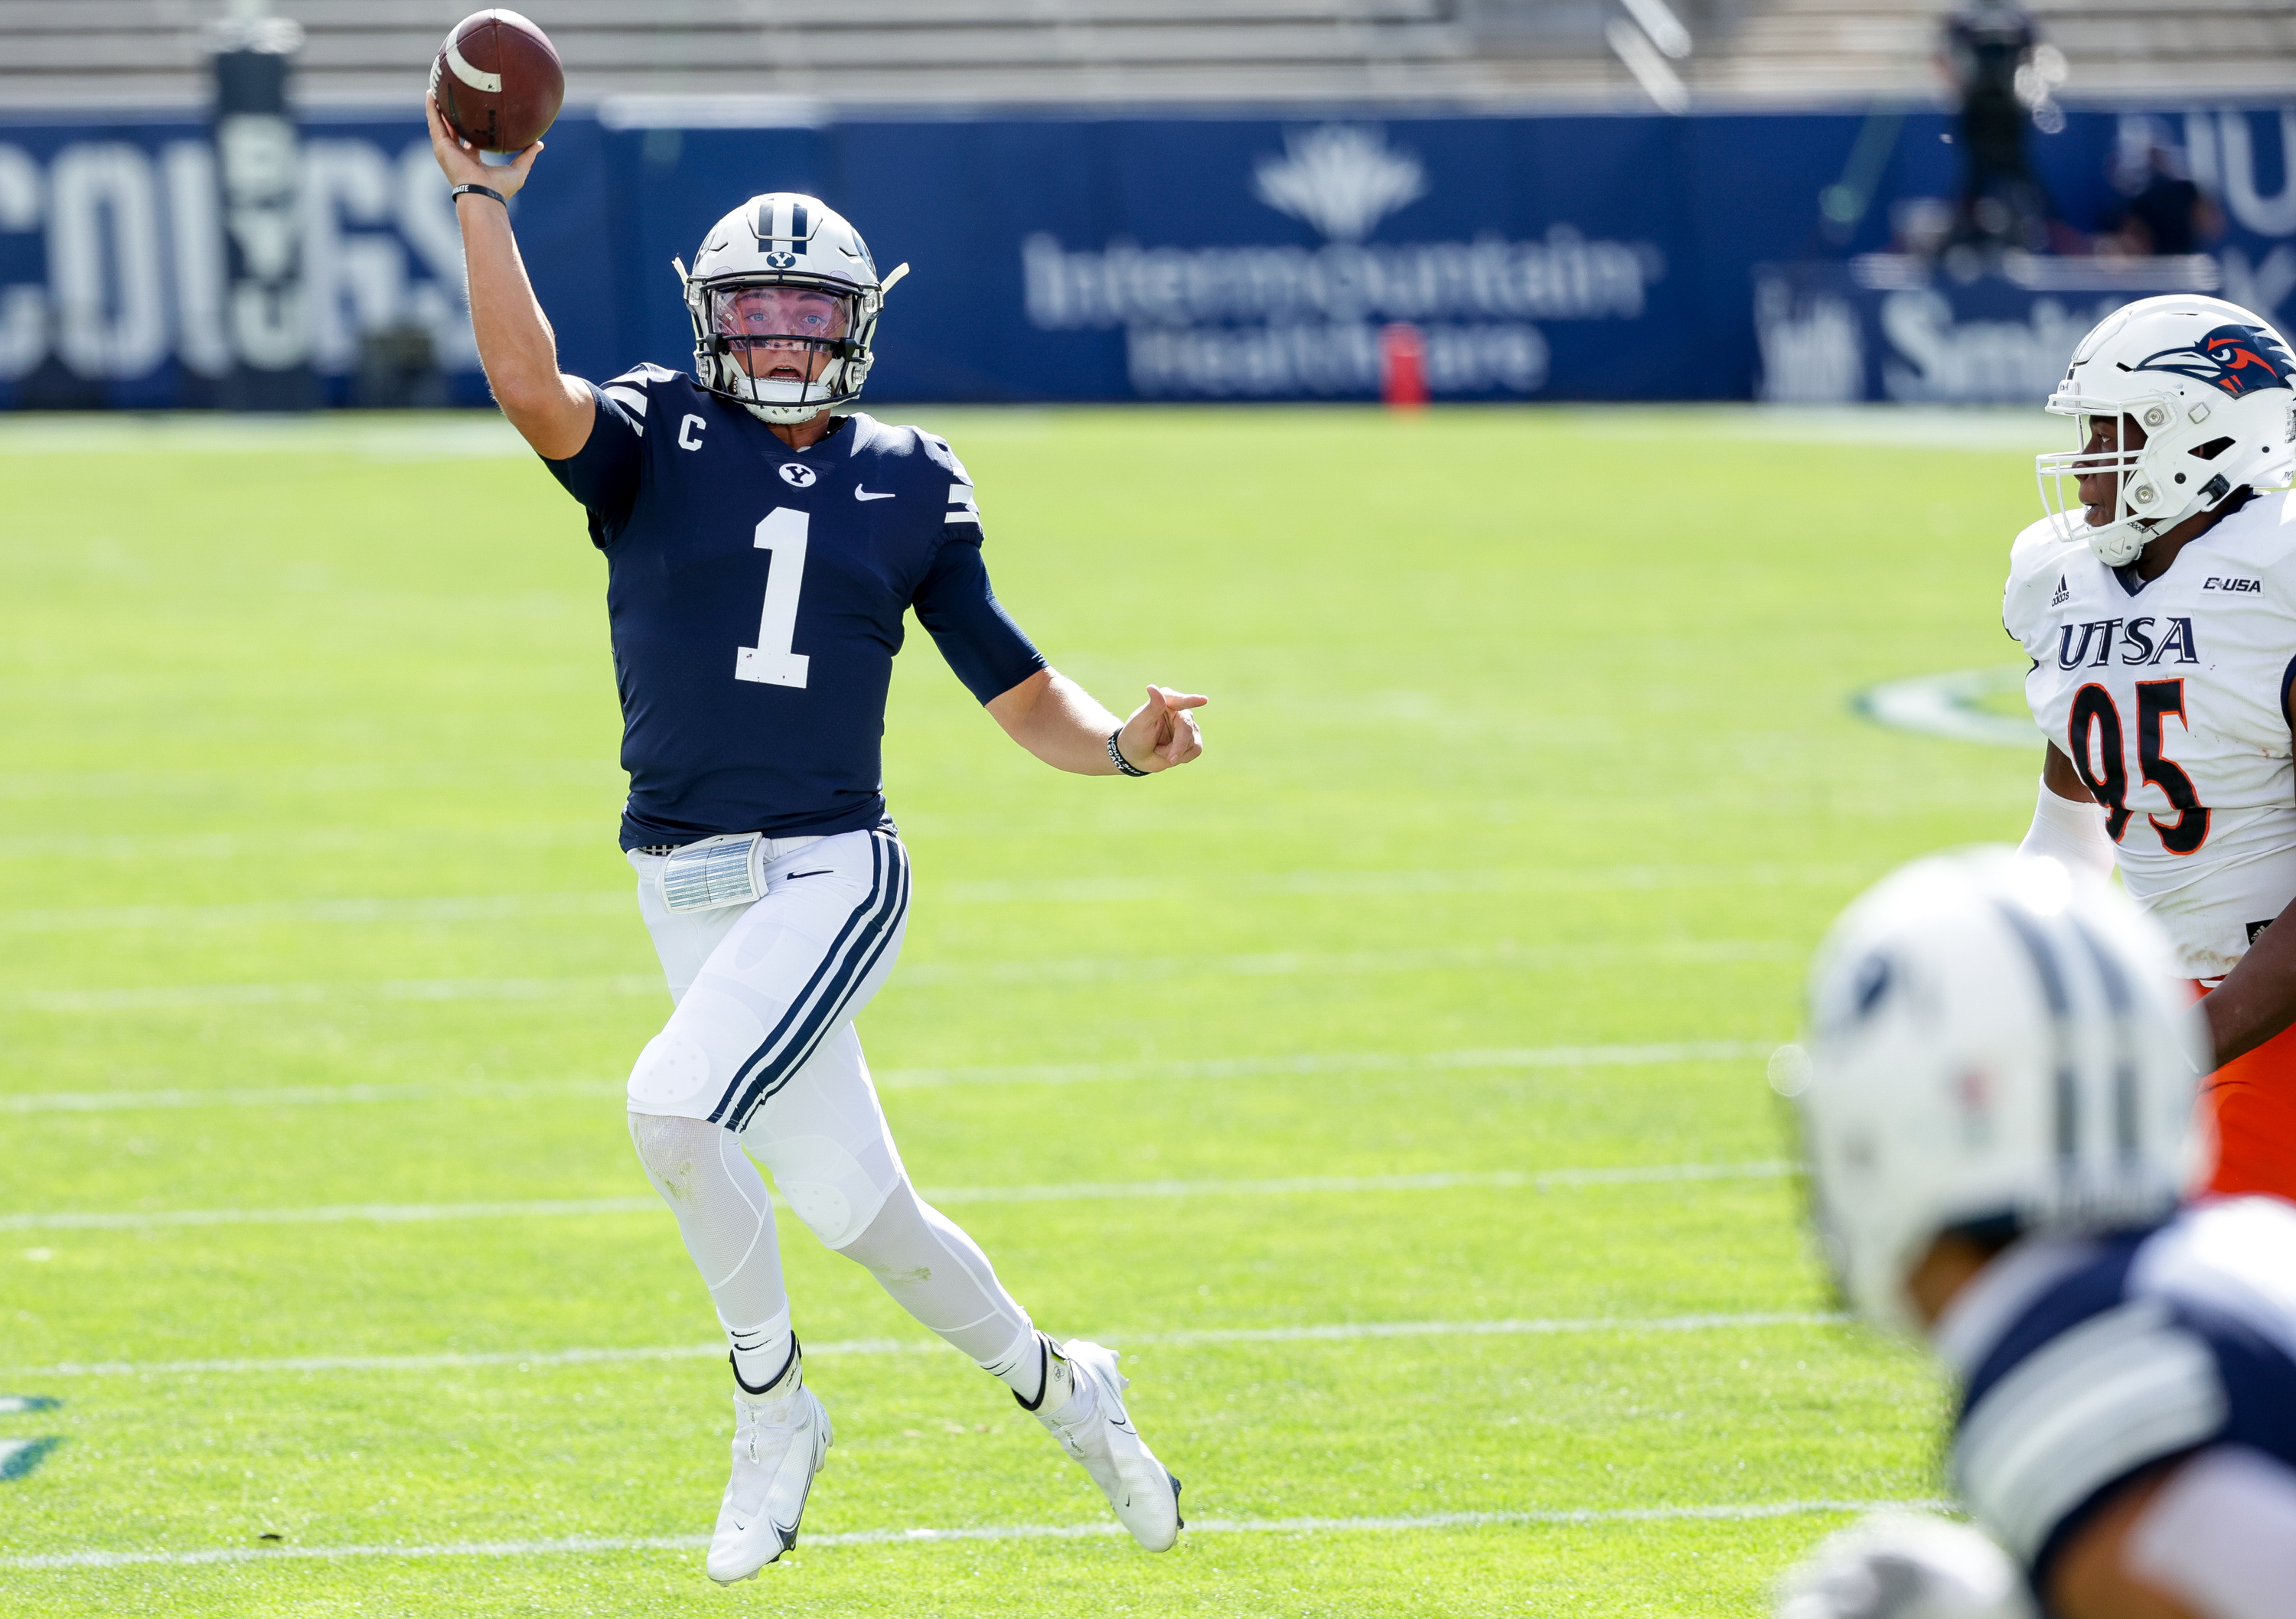 Brigham Young Cougars quarterback Zach Wilson (1) passes during the game against the UTSA Roadrunners at LaVell Edwards Stadium in Provo on Saturday, Oct. 10, 2020.